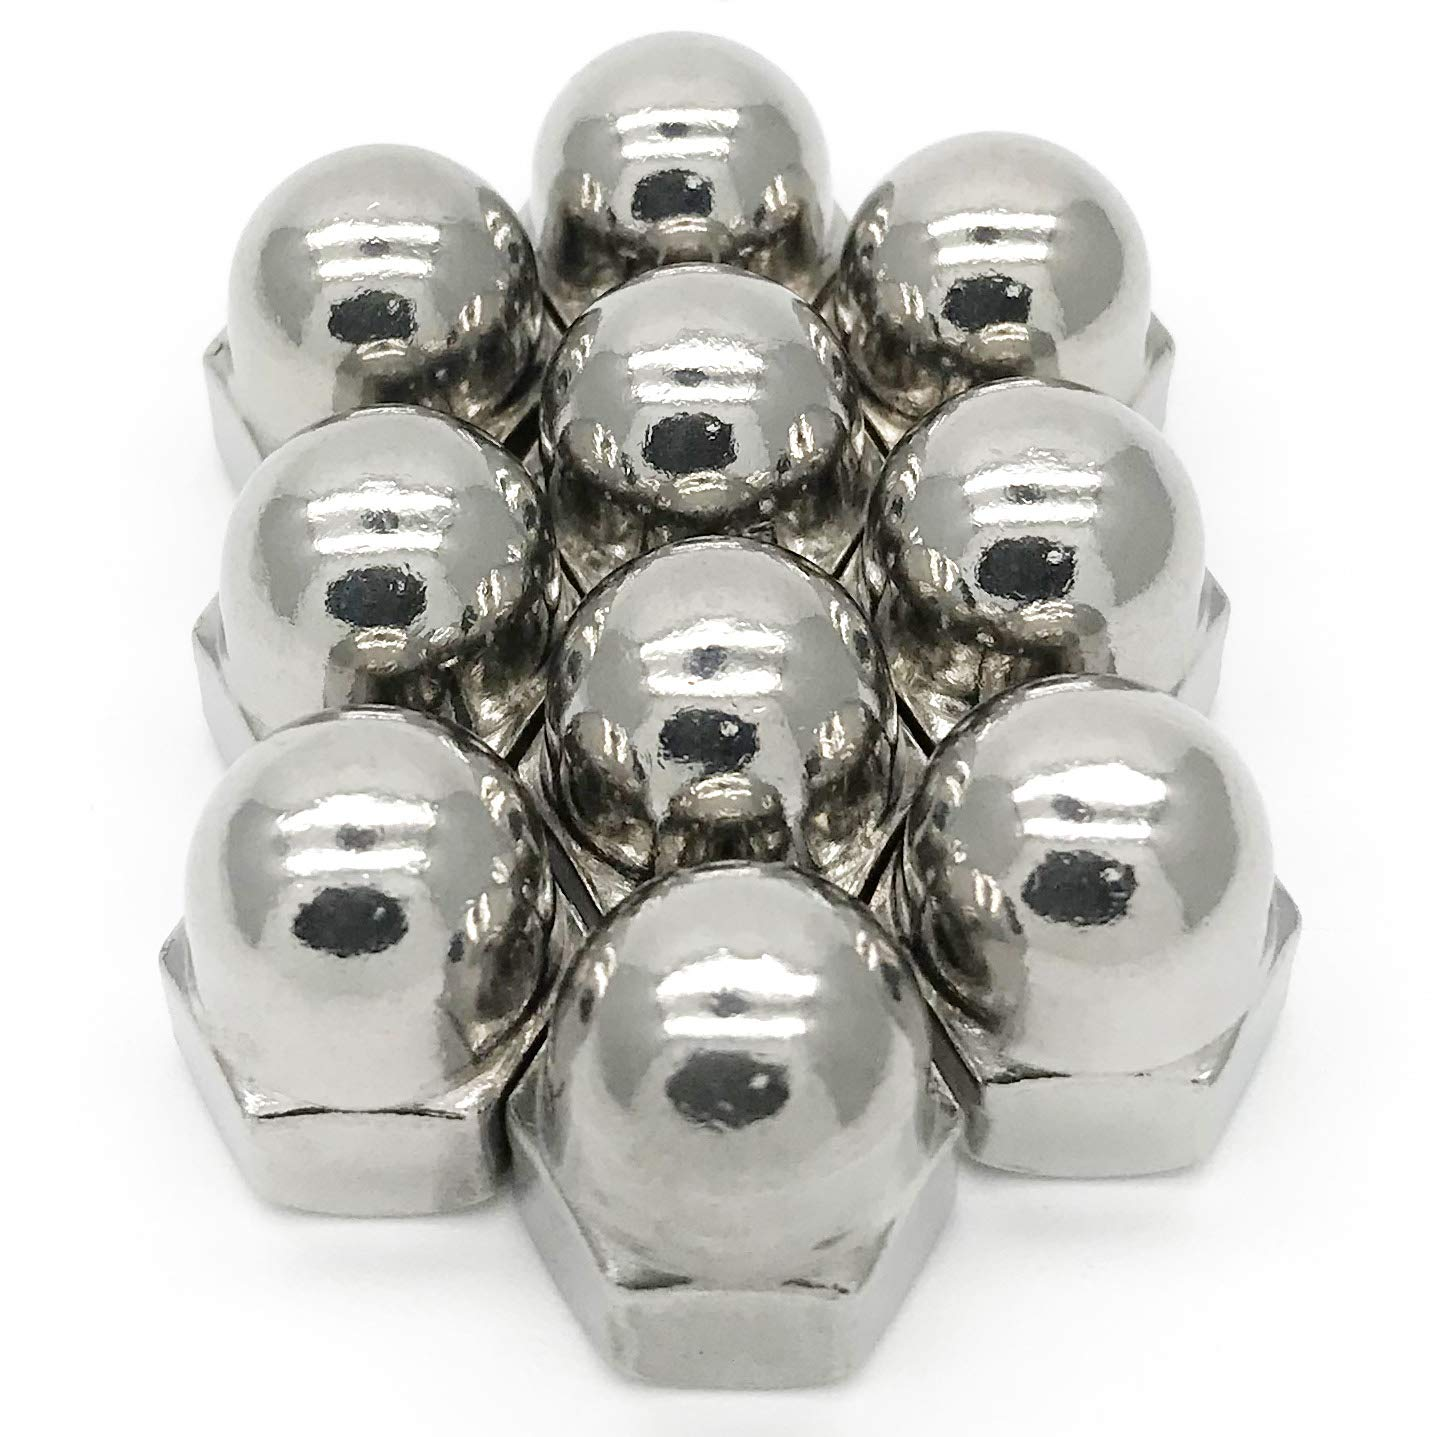 M12 Thread Dome Head DIN1587 Stainless Steel Cap Acorn Hex Nuts 5Pcs